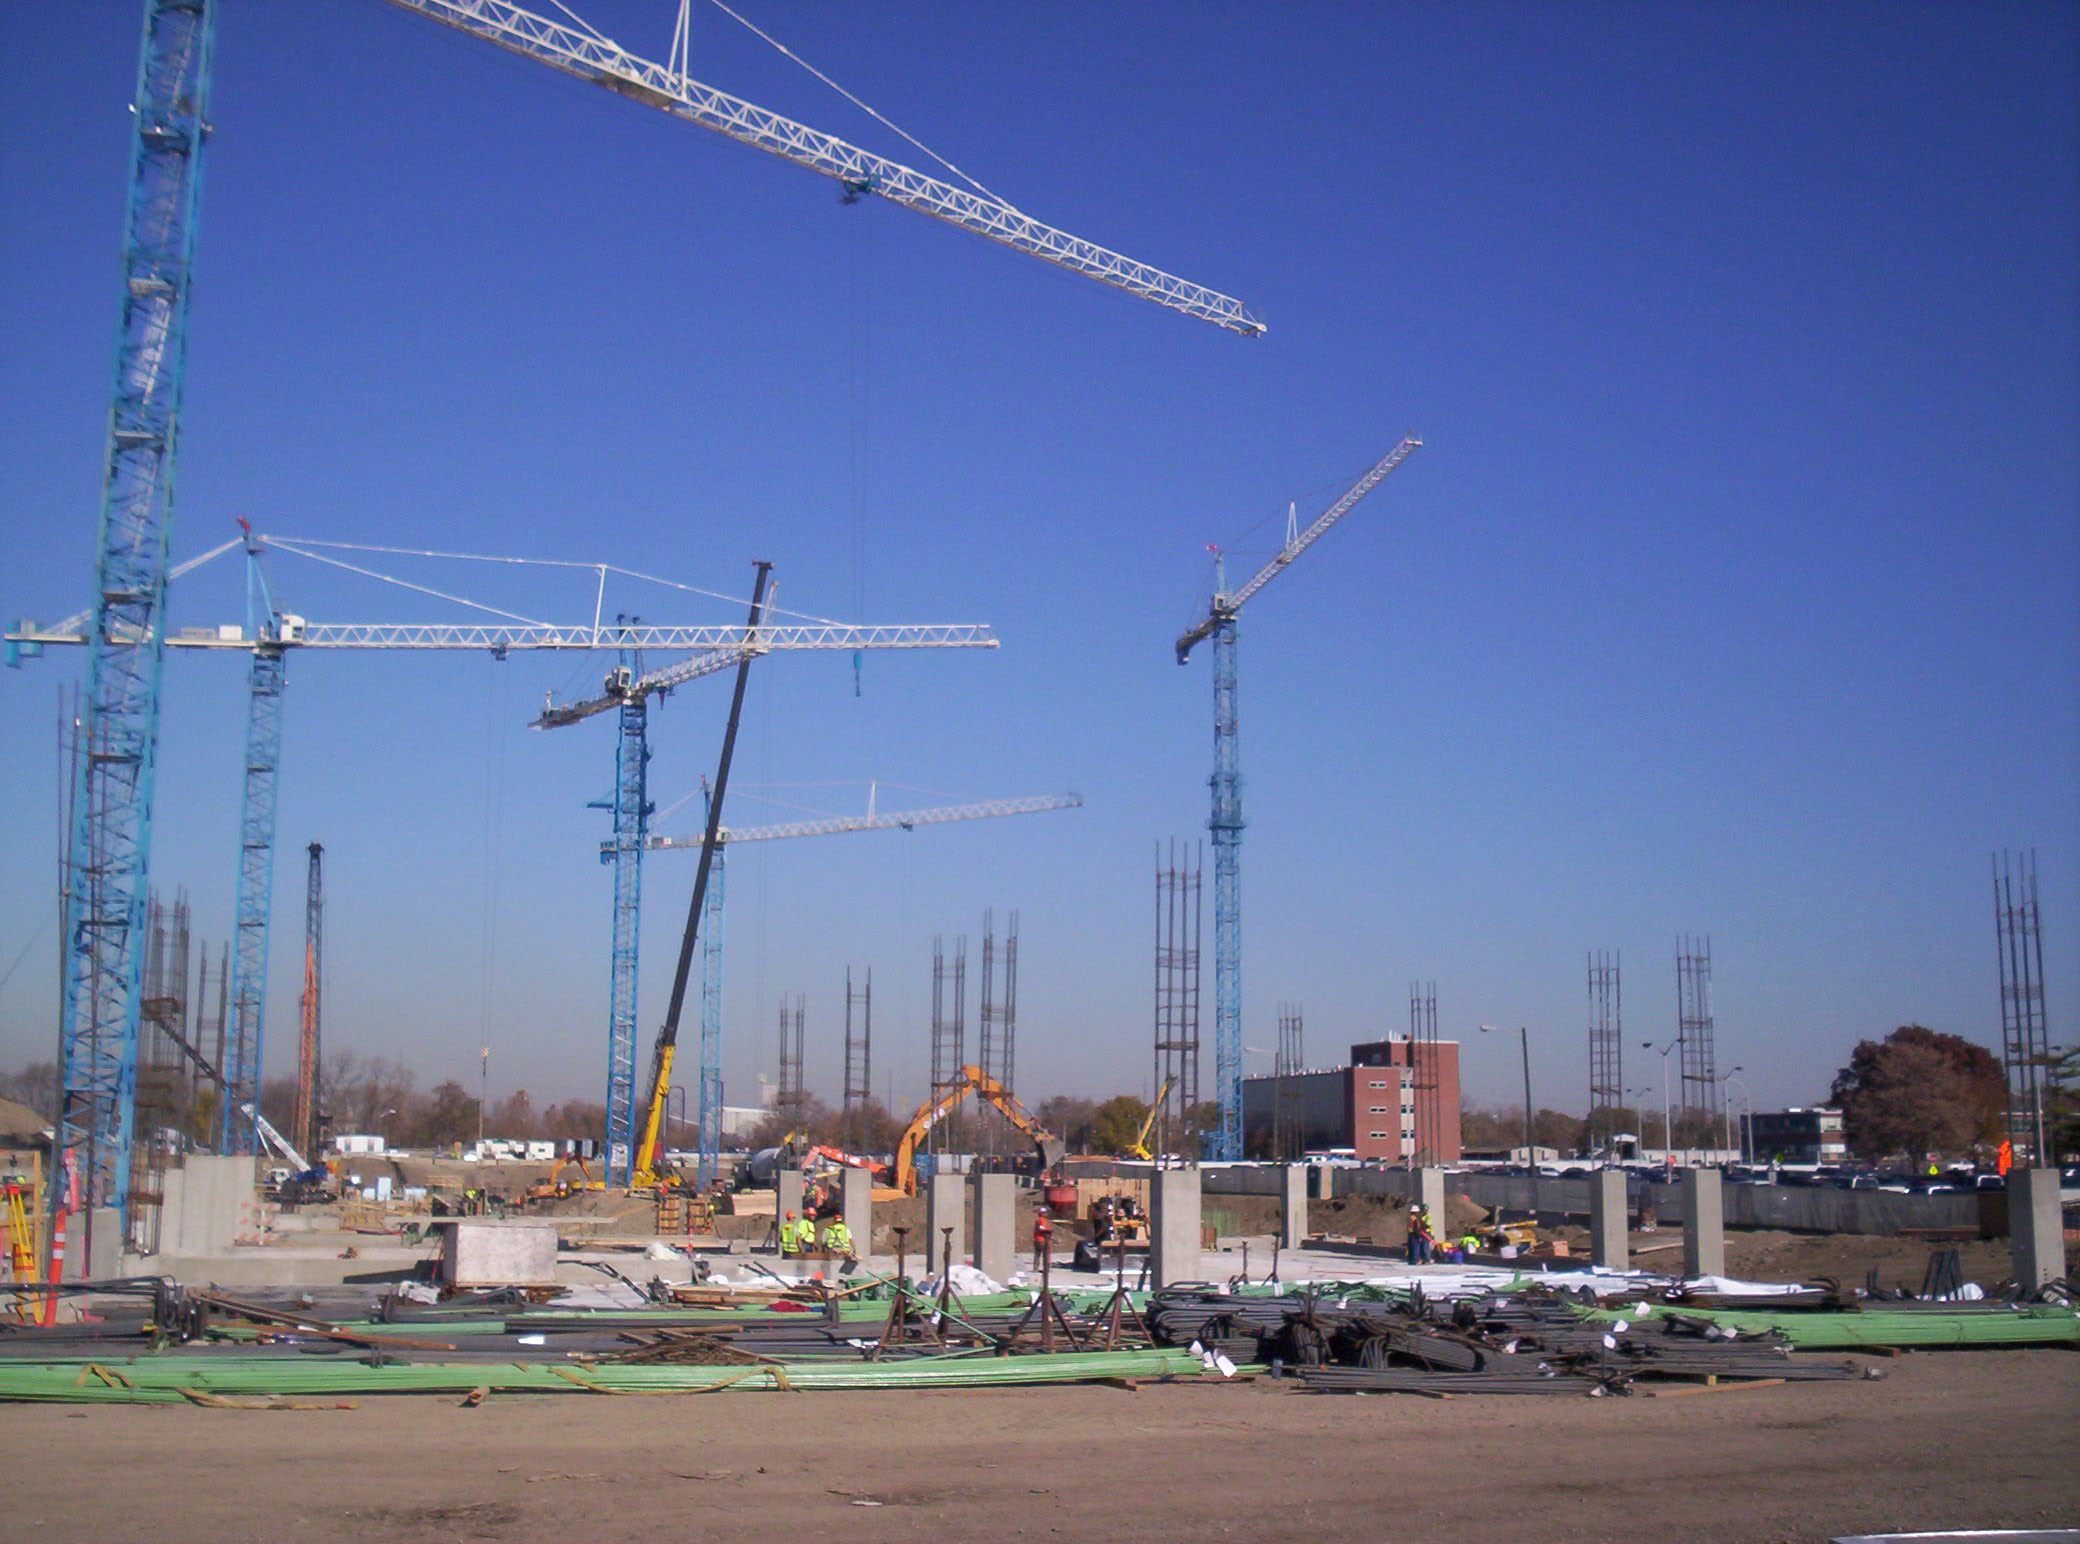 Five tower cranes at the new Wishard Hospital in Indianapolis